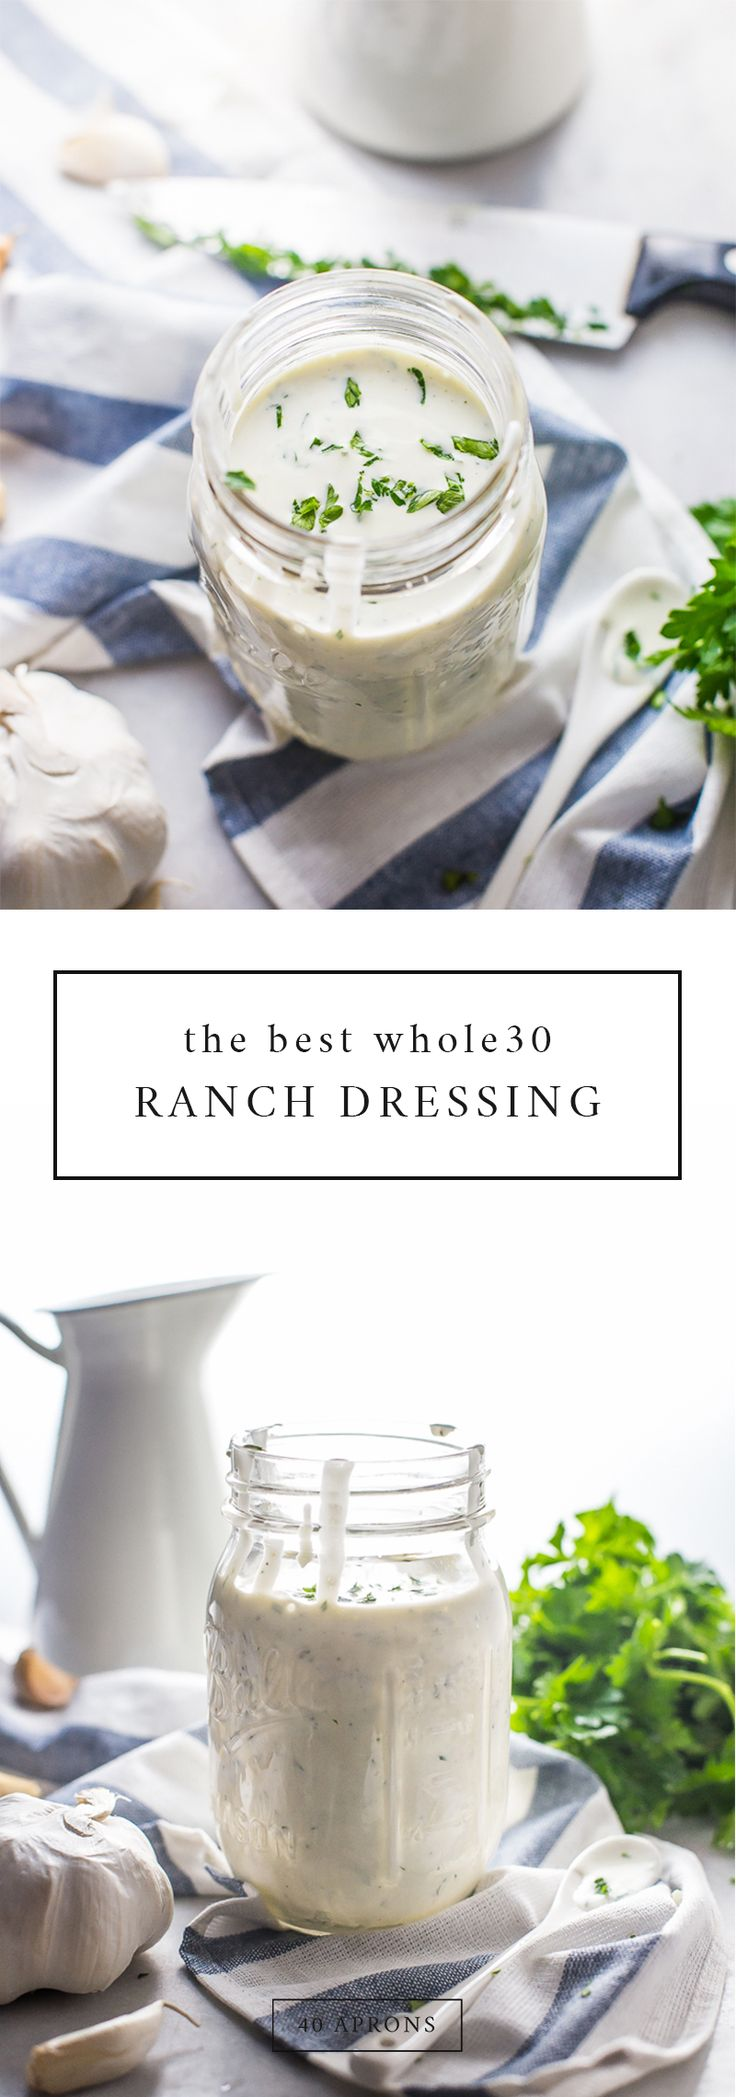 The best Whole30 ranch dressing. Garlicky with fresh herbs, it's the best paleo ranch dressing out there!